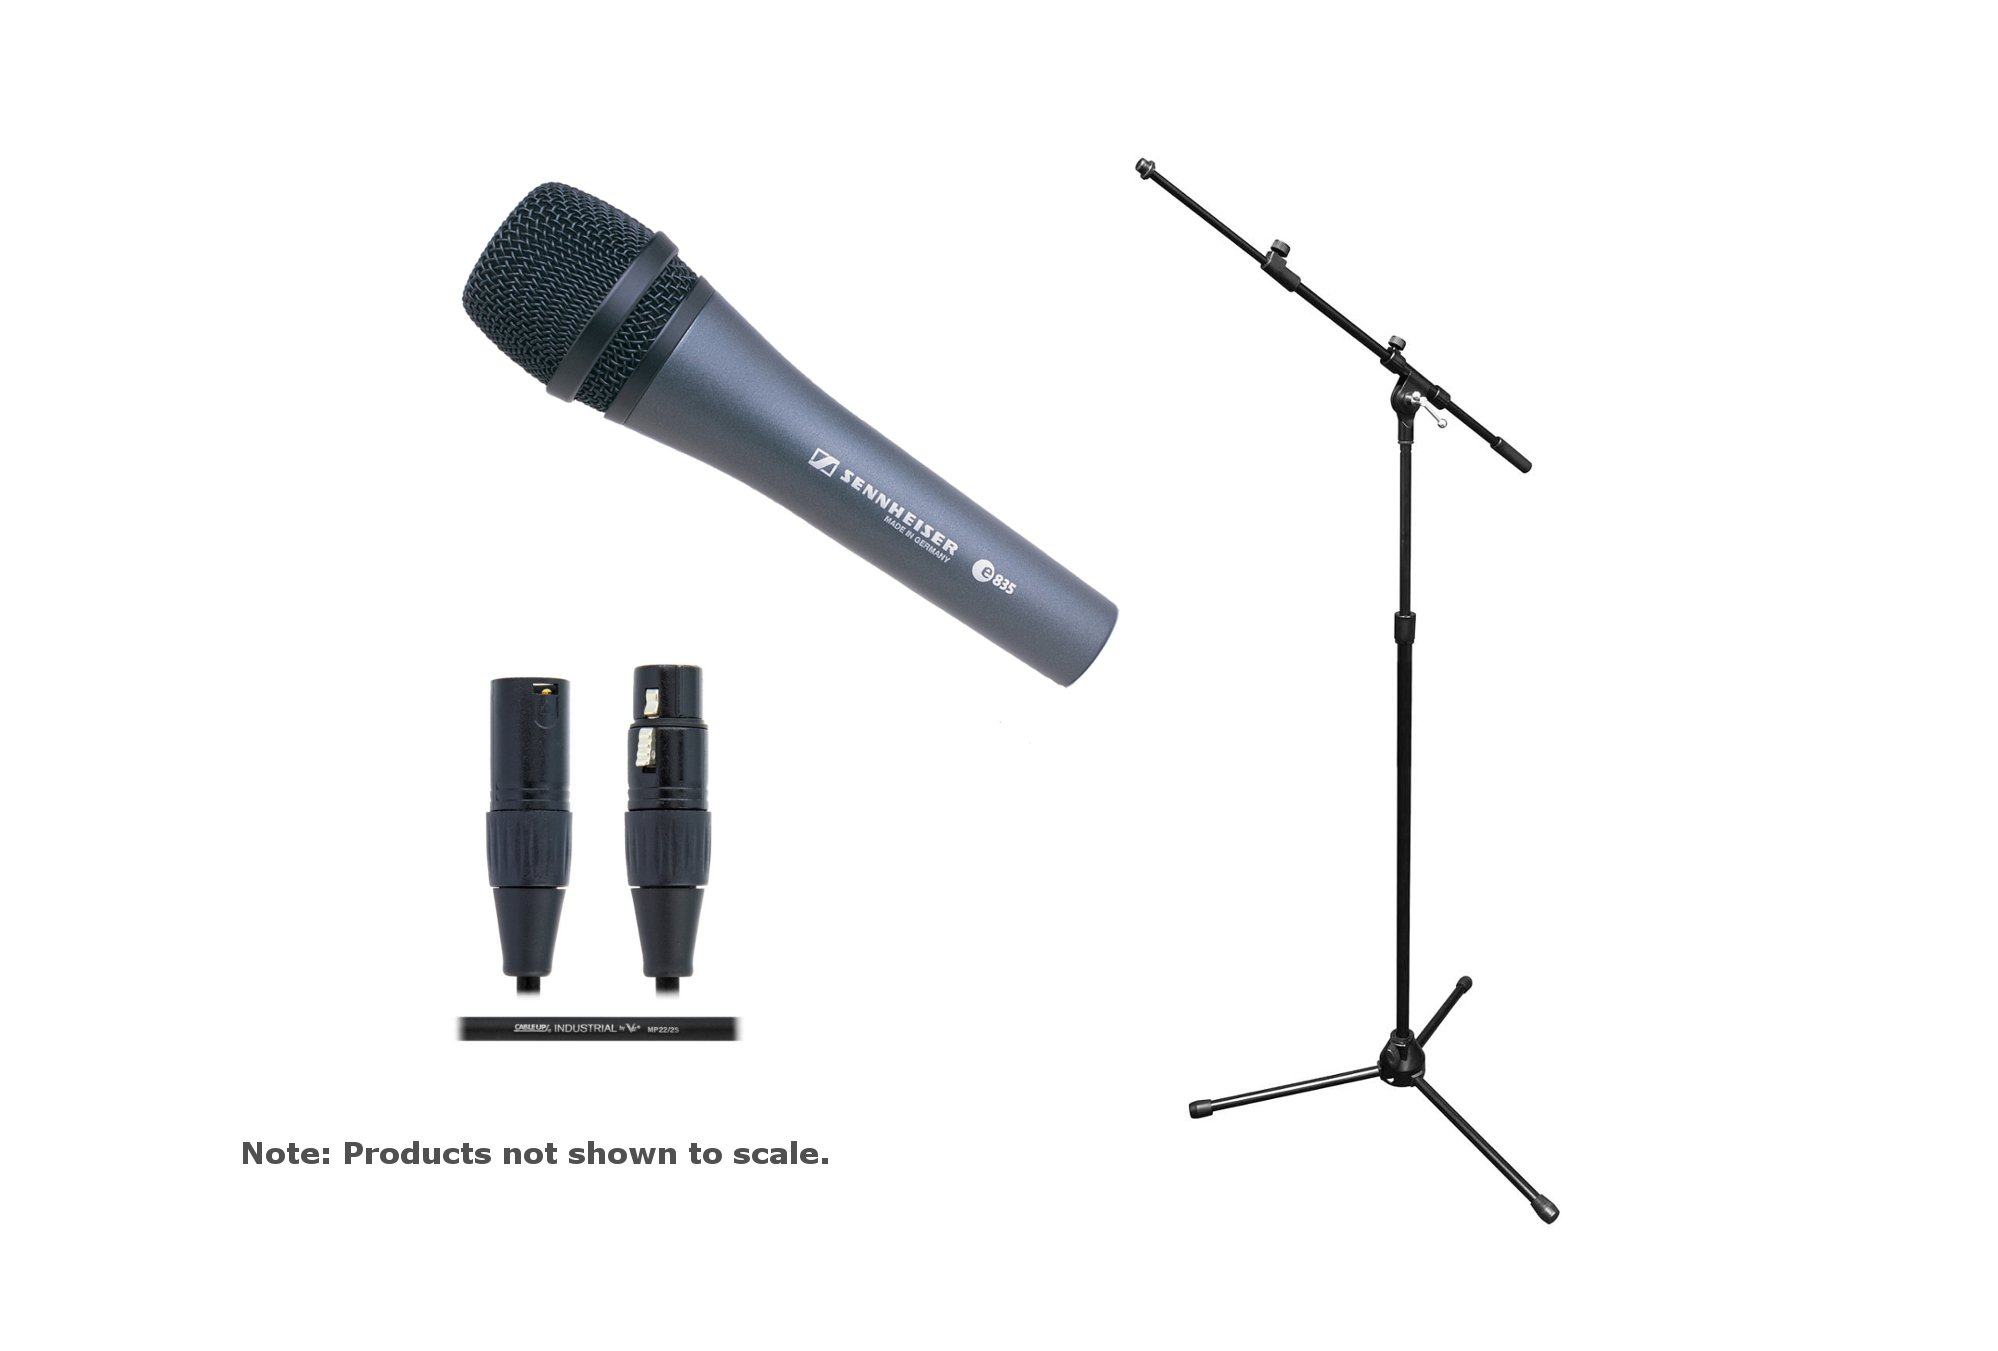 Sennheiser e 835 / Stand / Cable Bundle e 835 Mic with Tripod Mic Stand/Boom and 20ft Cable E835-SOLO-K